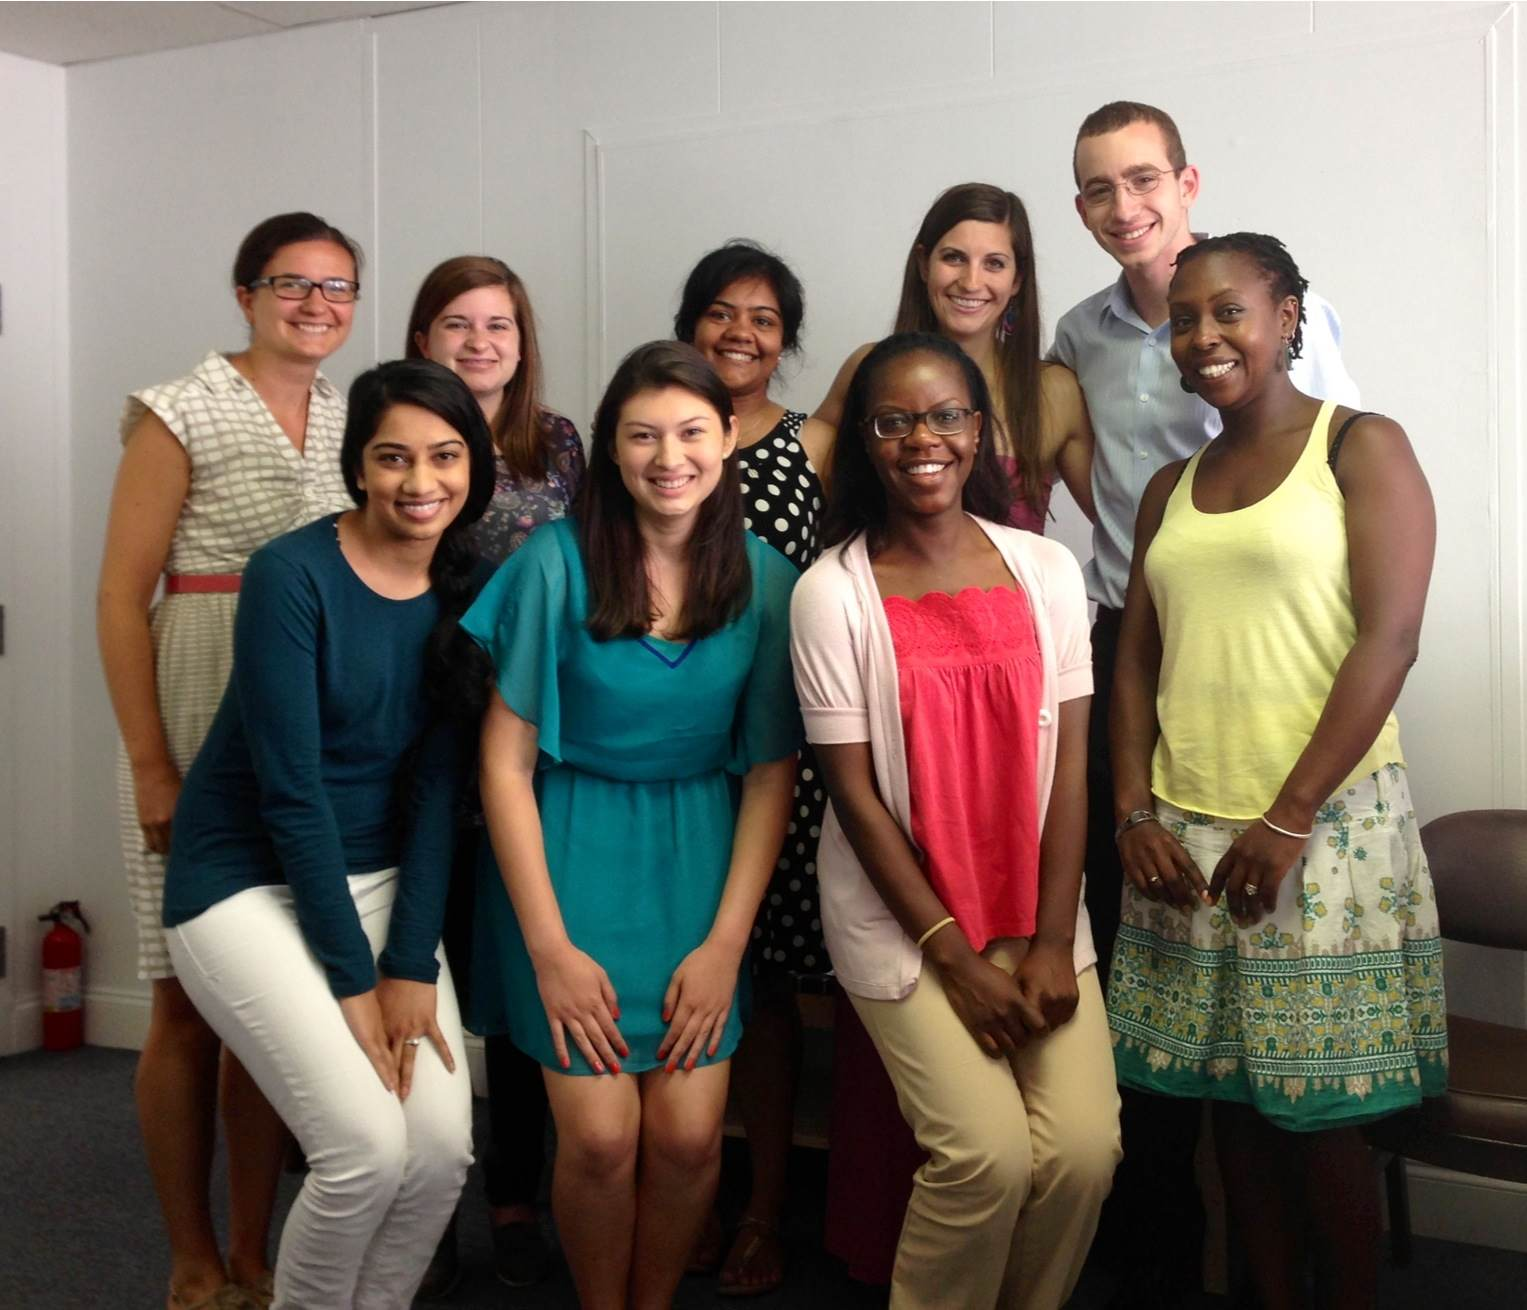 FIMRC Interns and Staff at HQ